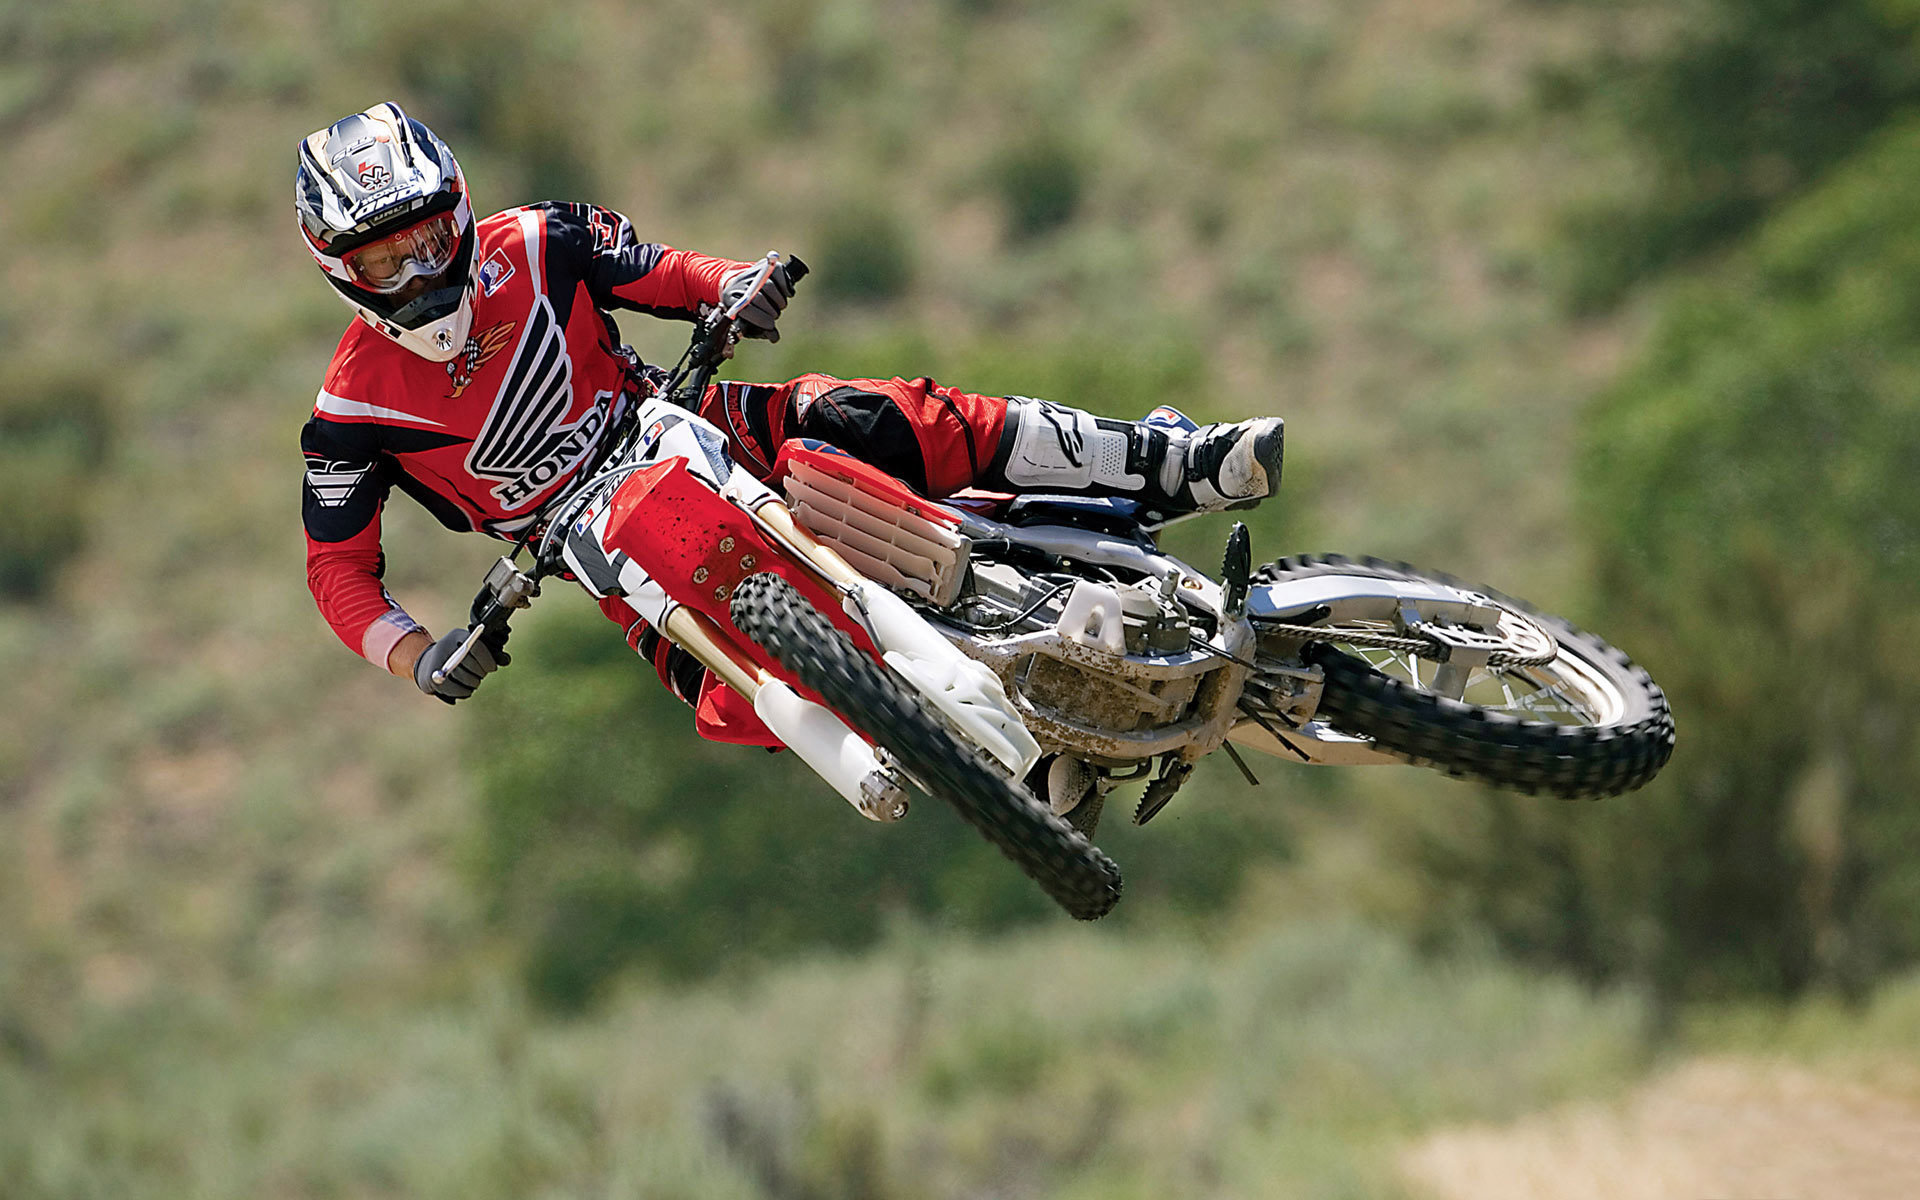 Motocross Wallpapers, Photos And Desktop Backgrounds Up To